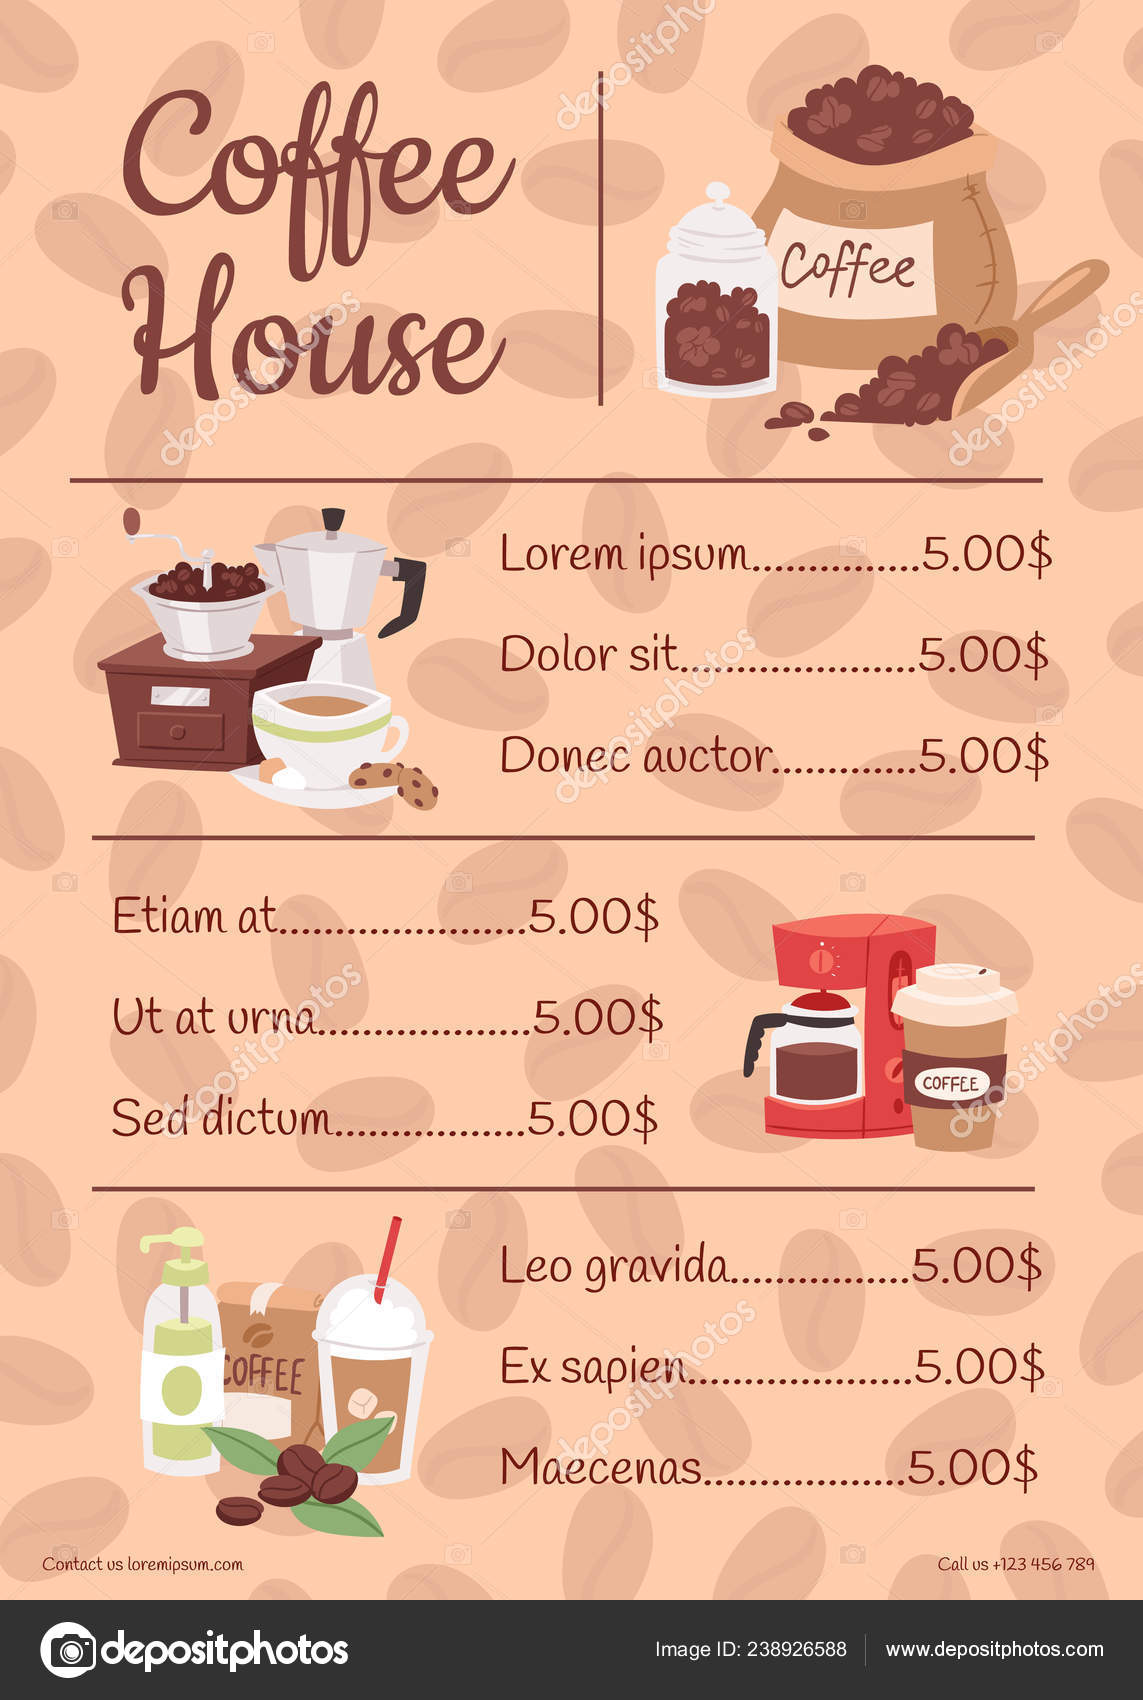 Pictures Coffee House Cartoon Menu For Coffee House With